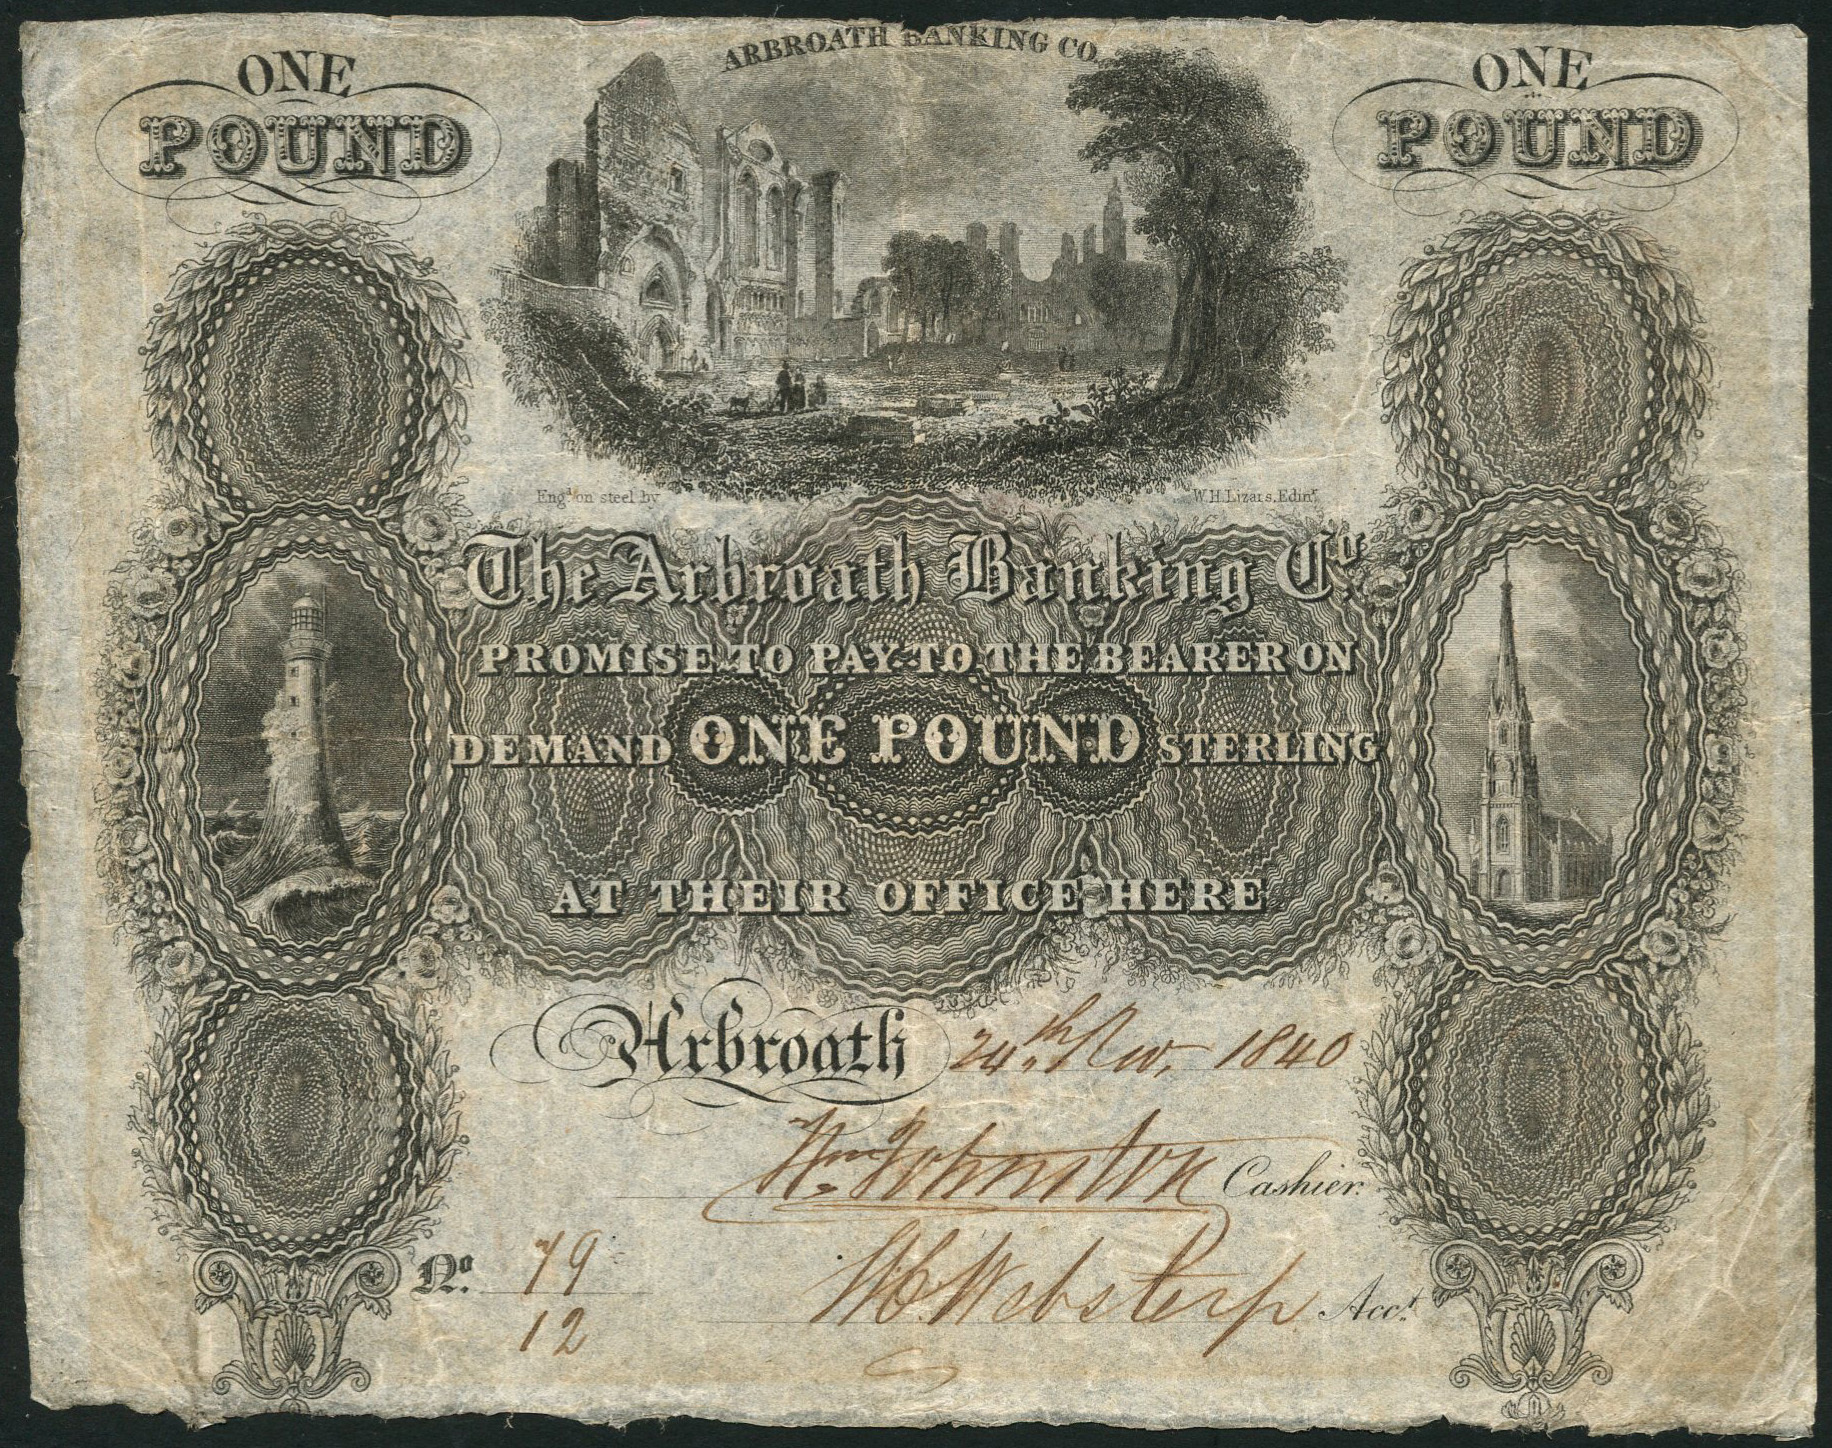 Arbroath Banking Compan ,one pound note issued November 24, 1840, featuring at the top an image of Arbroath Abbey and the Bell Rock lighthouse.